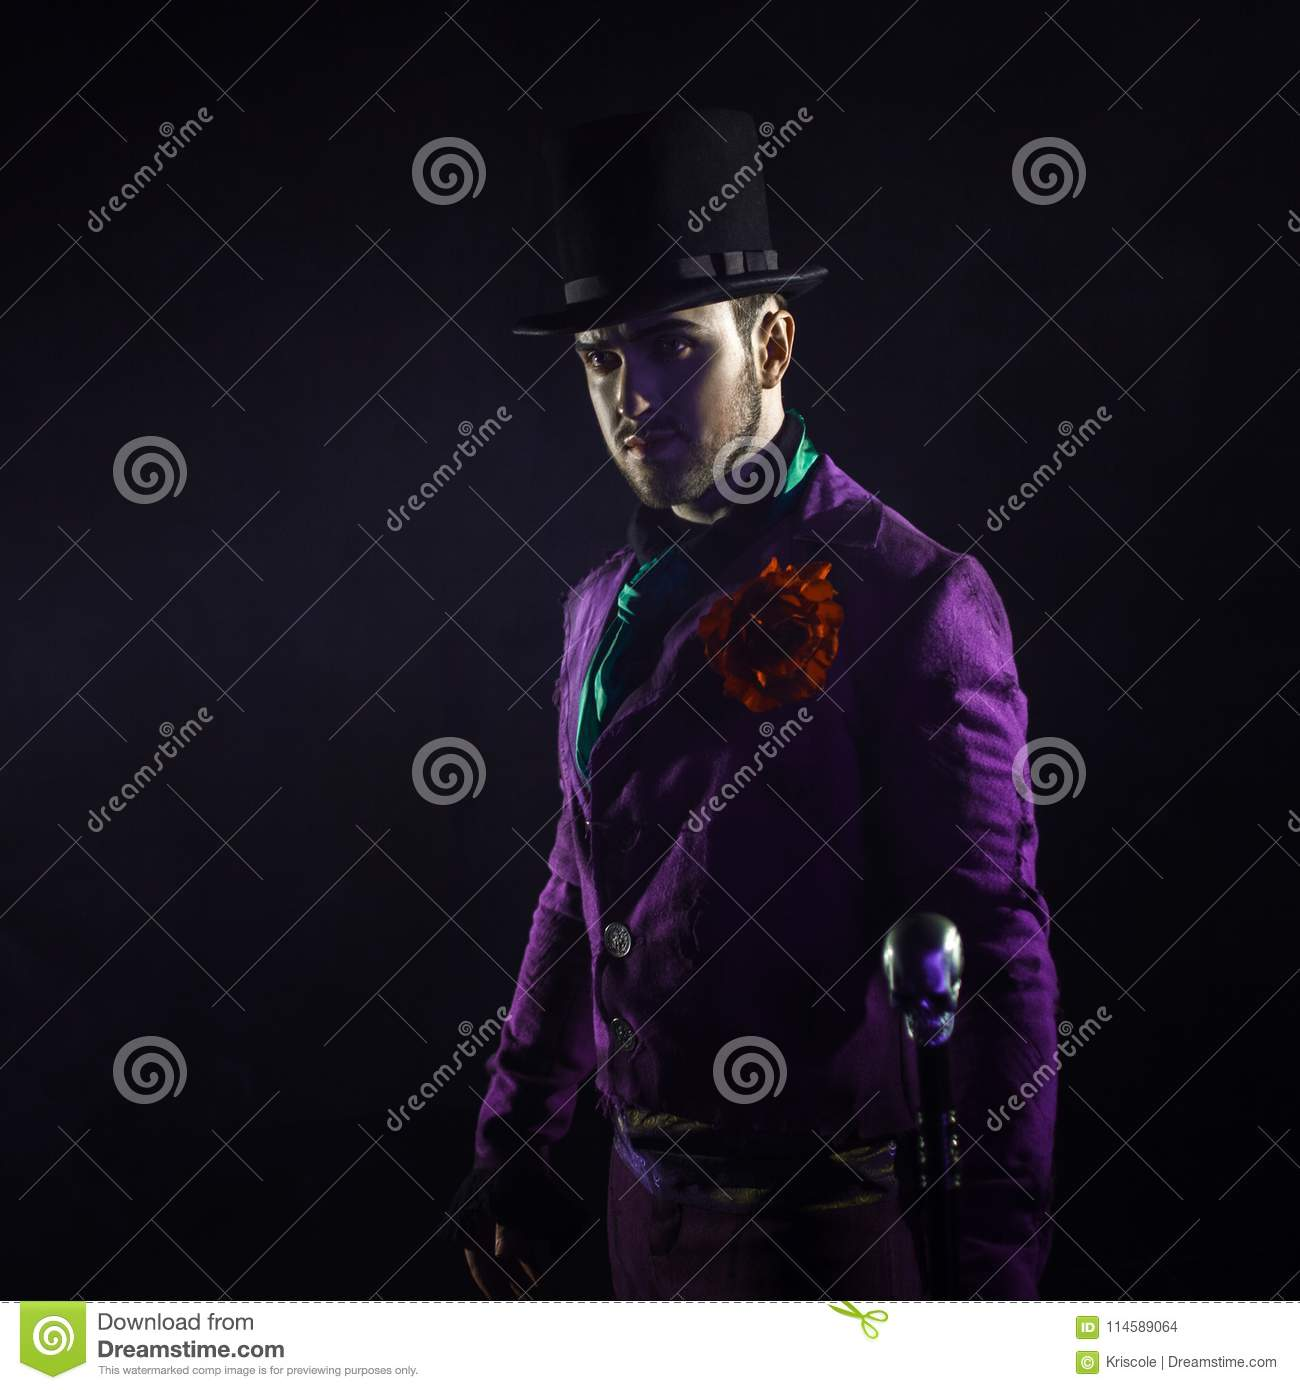 Joker Halloween costume. Royalty-Free Stock Photo. Download Mysterious Man In A Suit With A Cane In A Cylinder. Dark & Mysterious Man In A Suit With A Cane In A Cylinder. Dark ...